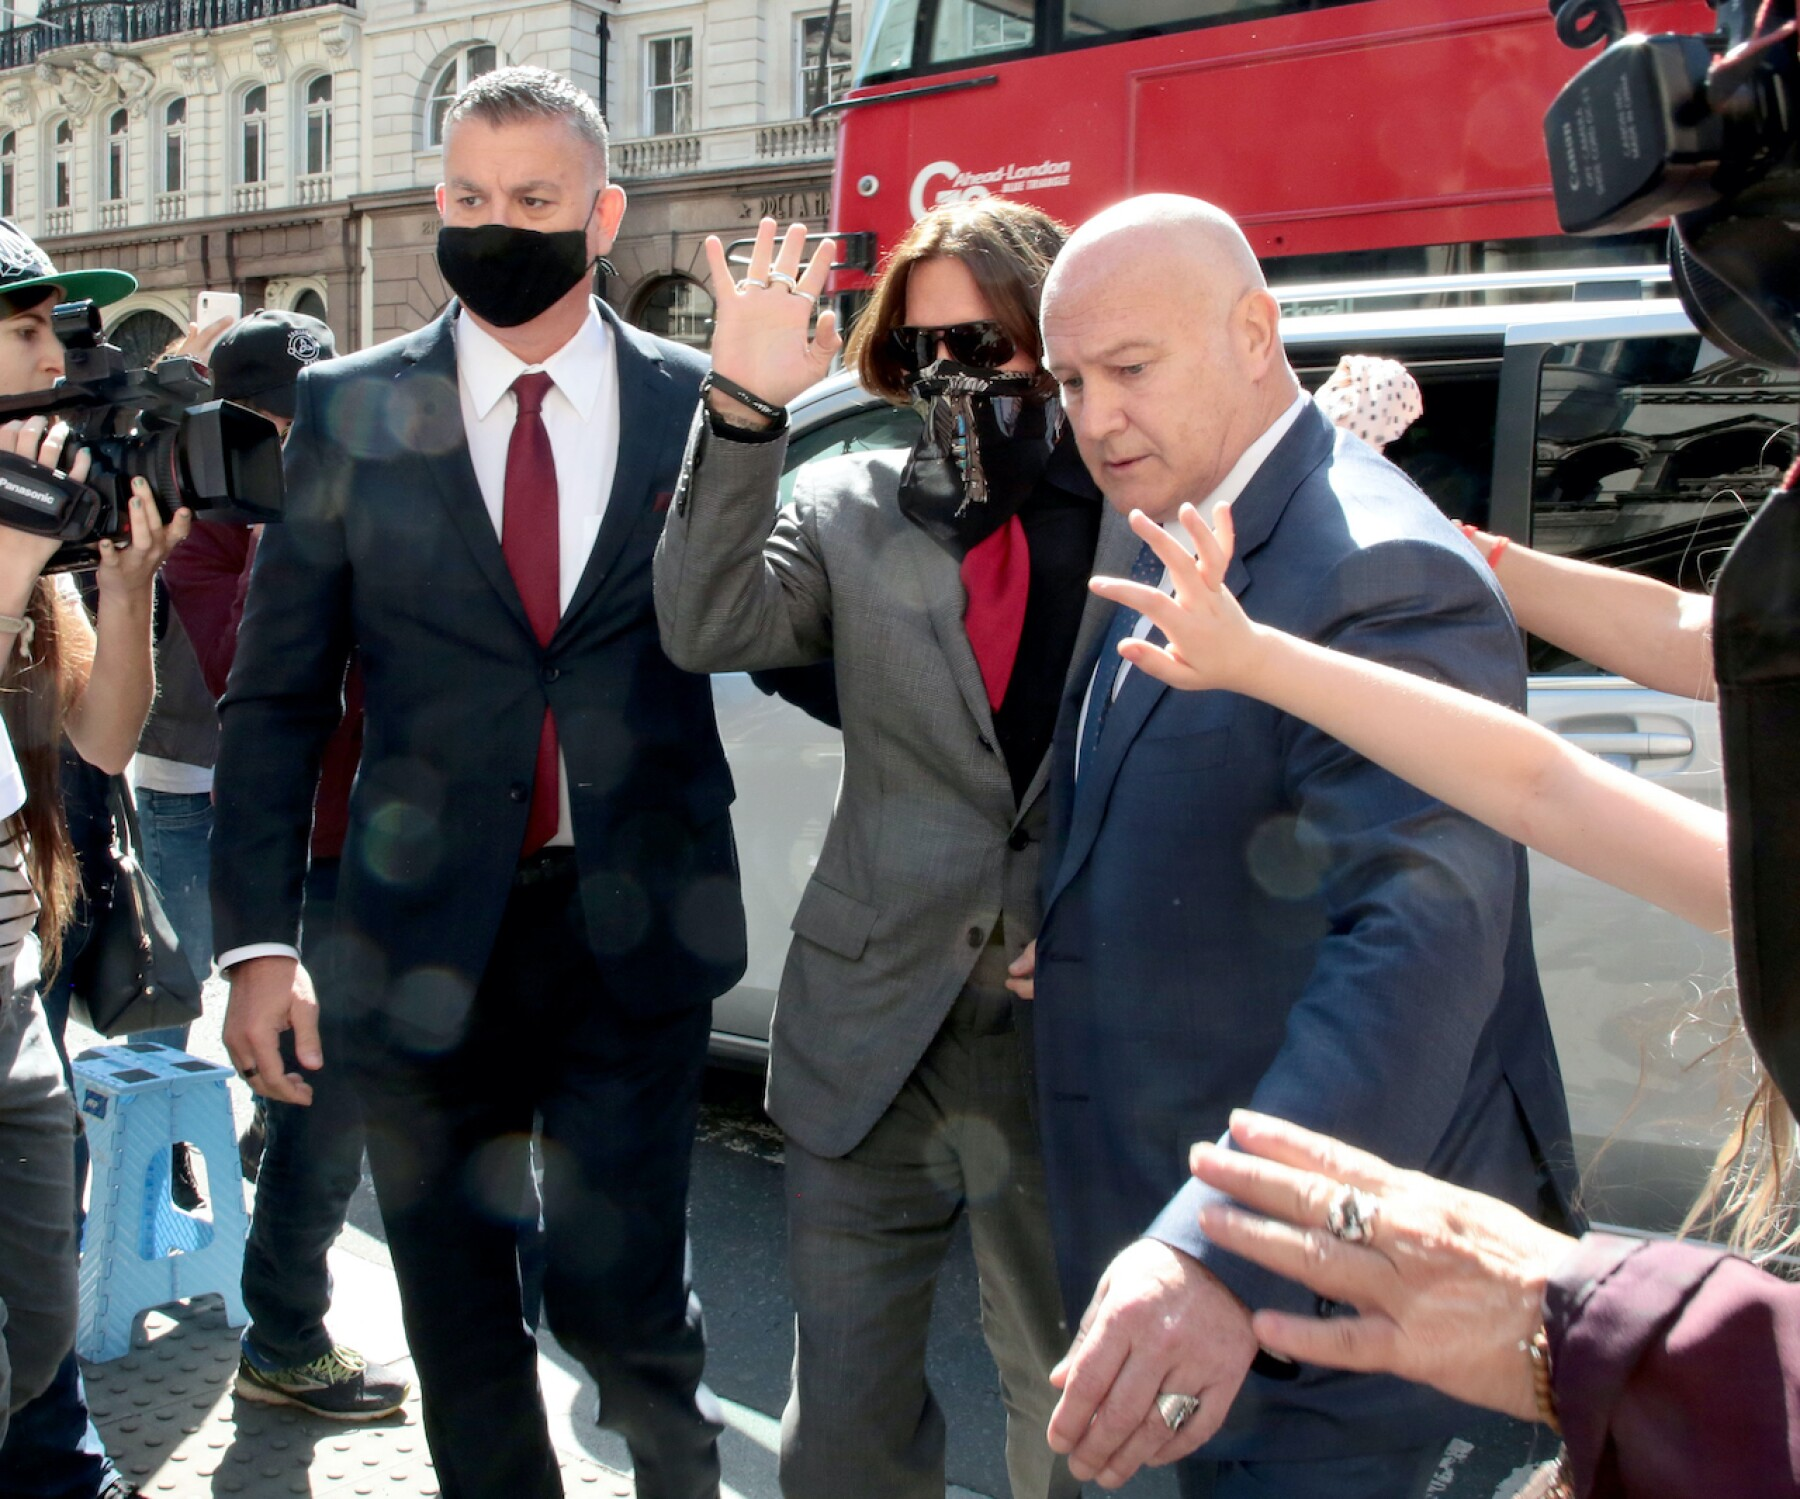 Johnny Depp v The Sun libel trial, The Royal Courts of Justice, London, UK - 21 Jul 2020